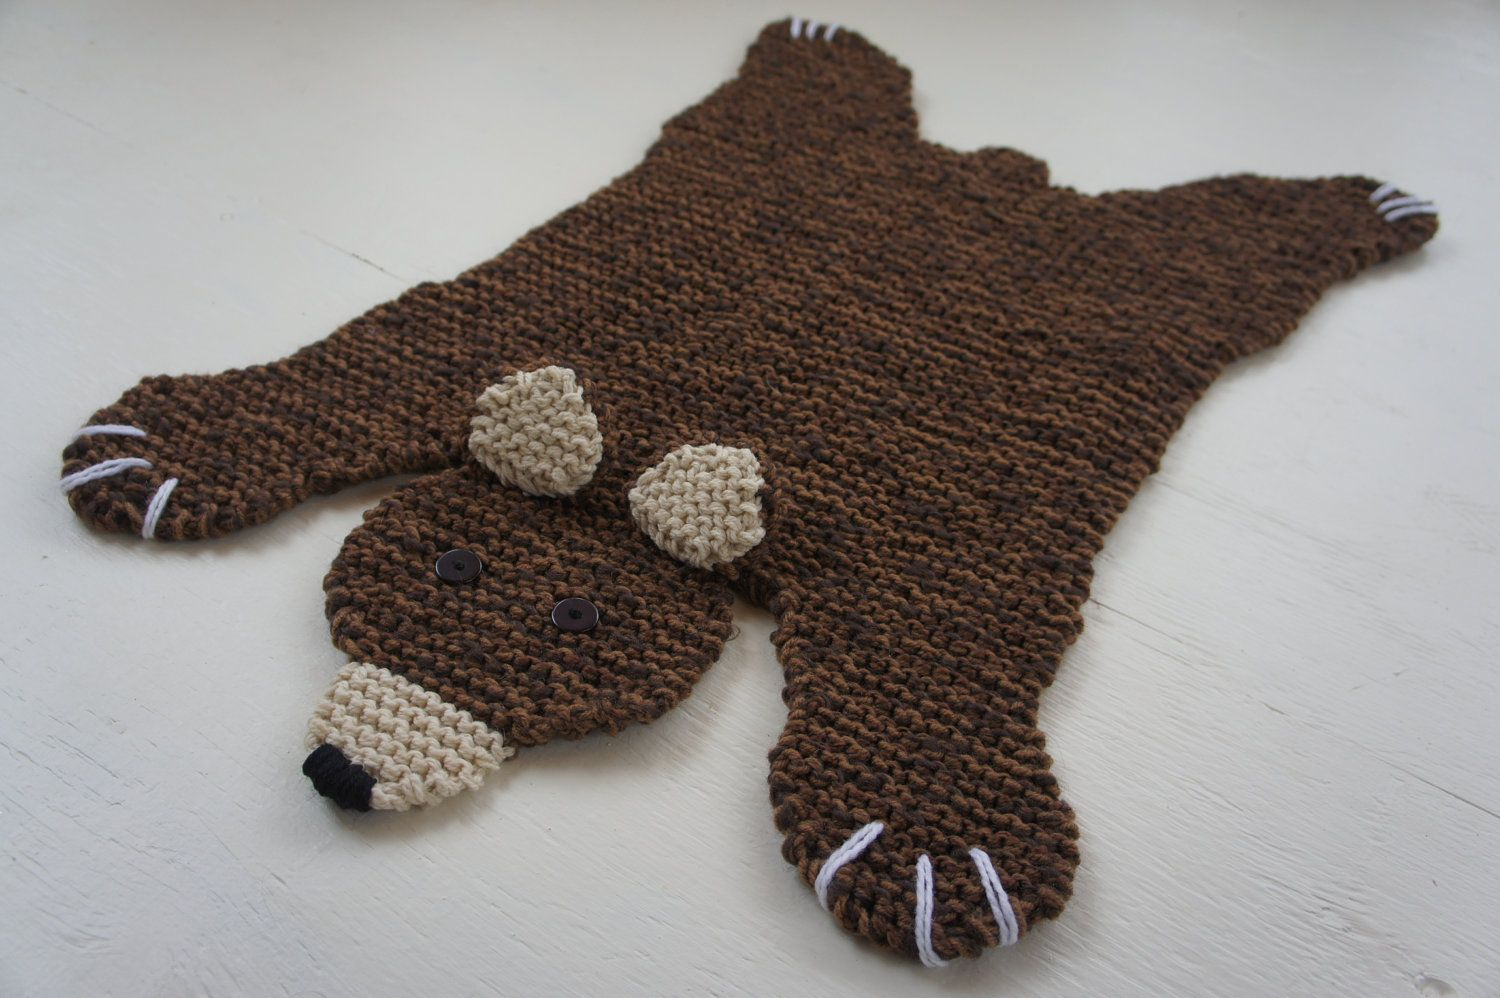 Flat brown bear rug/ mat/ blanket | Häkeln